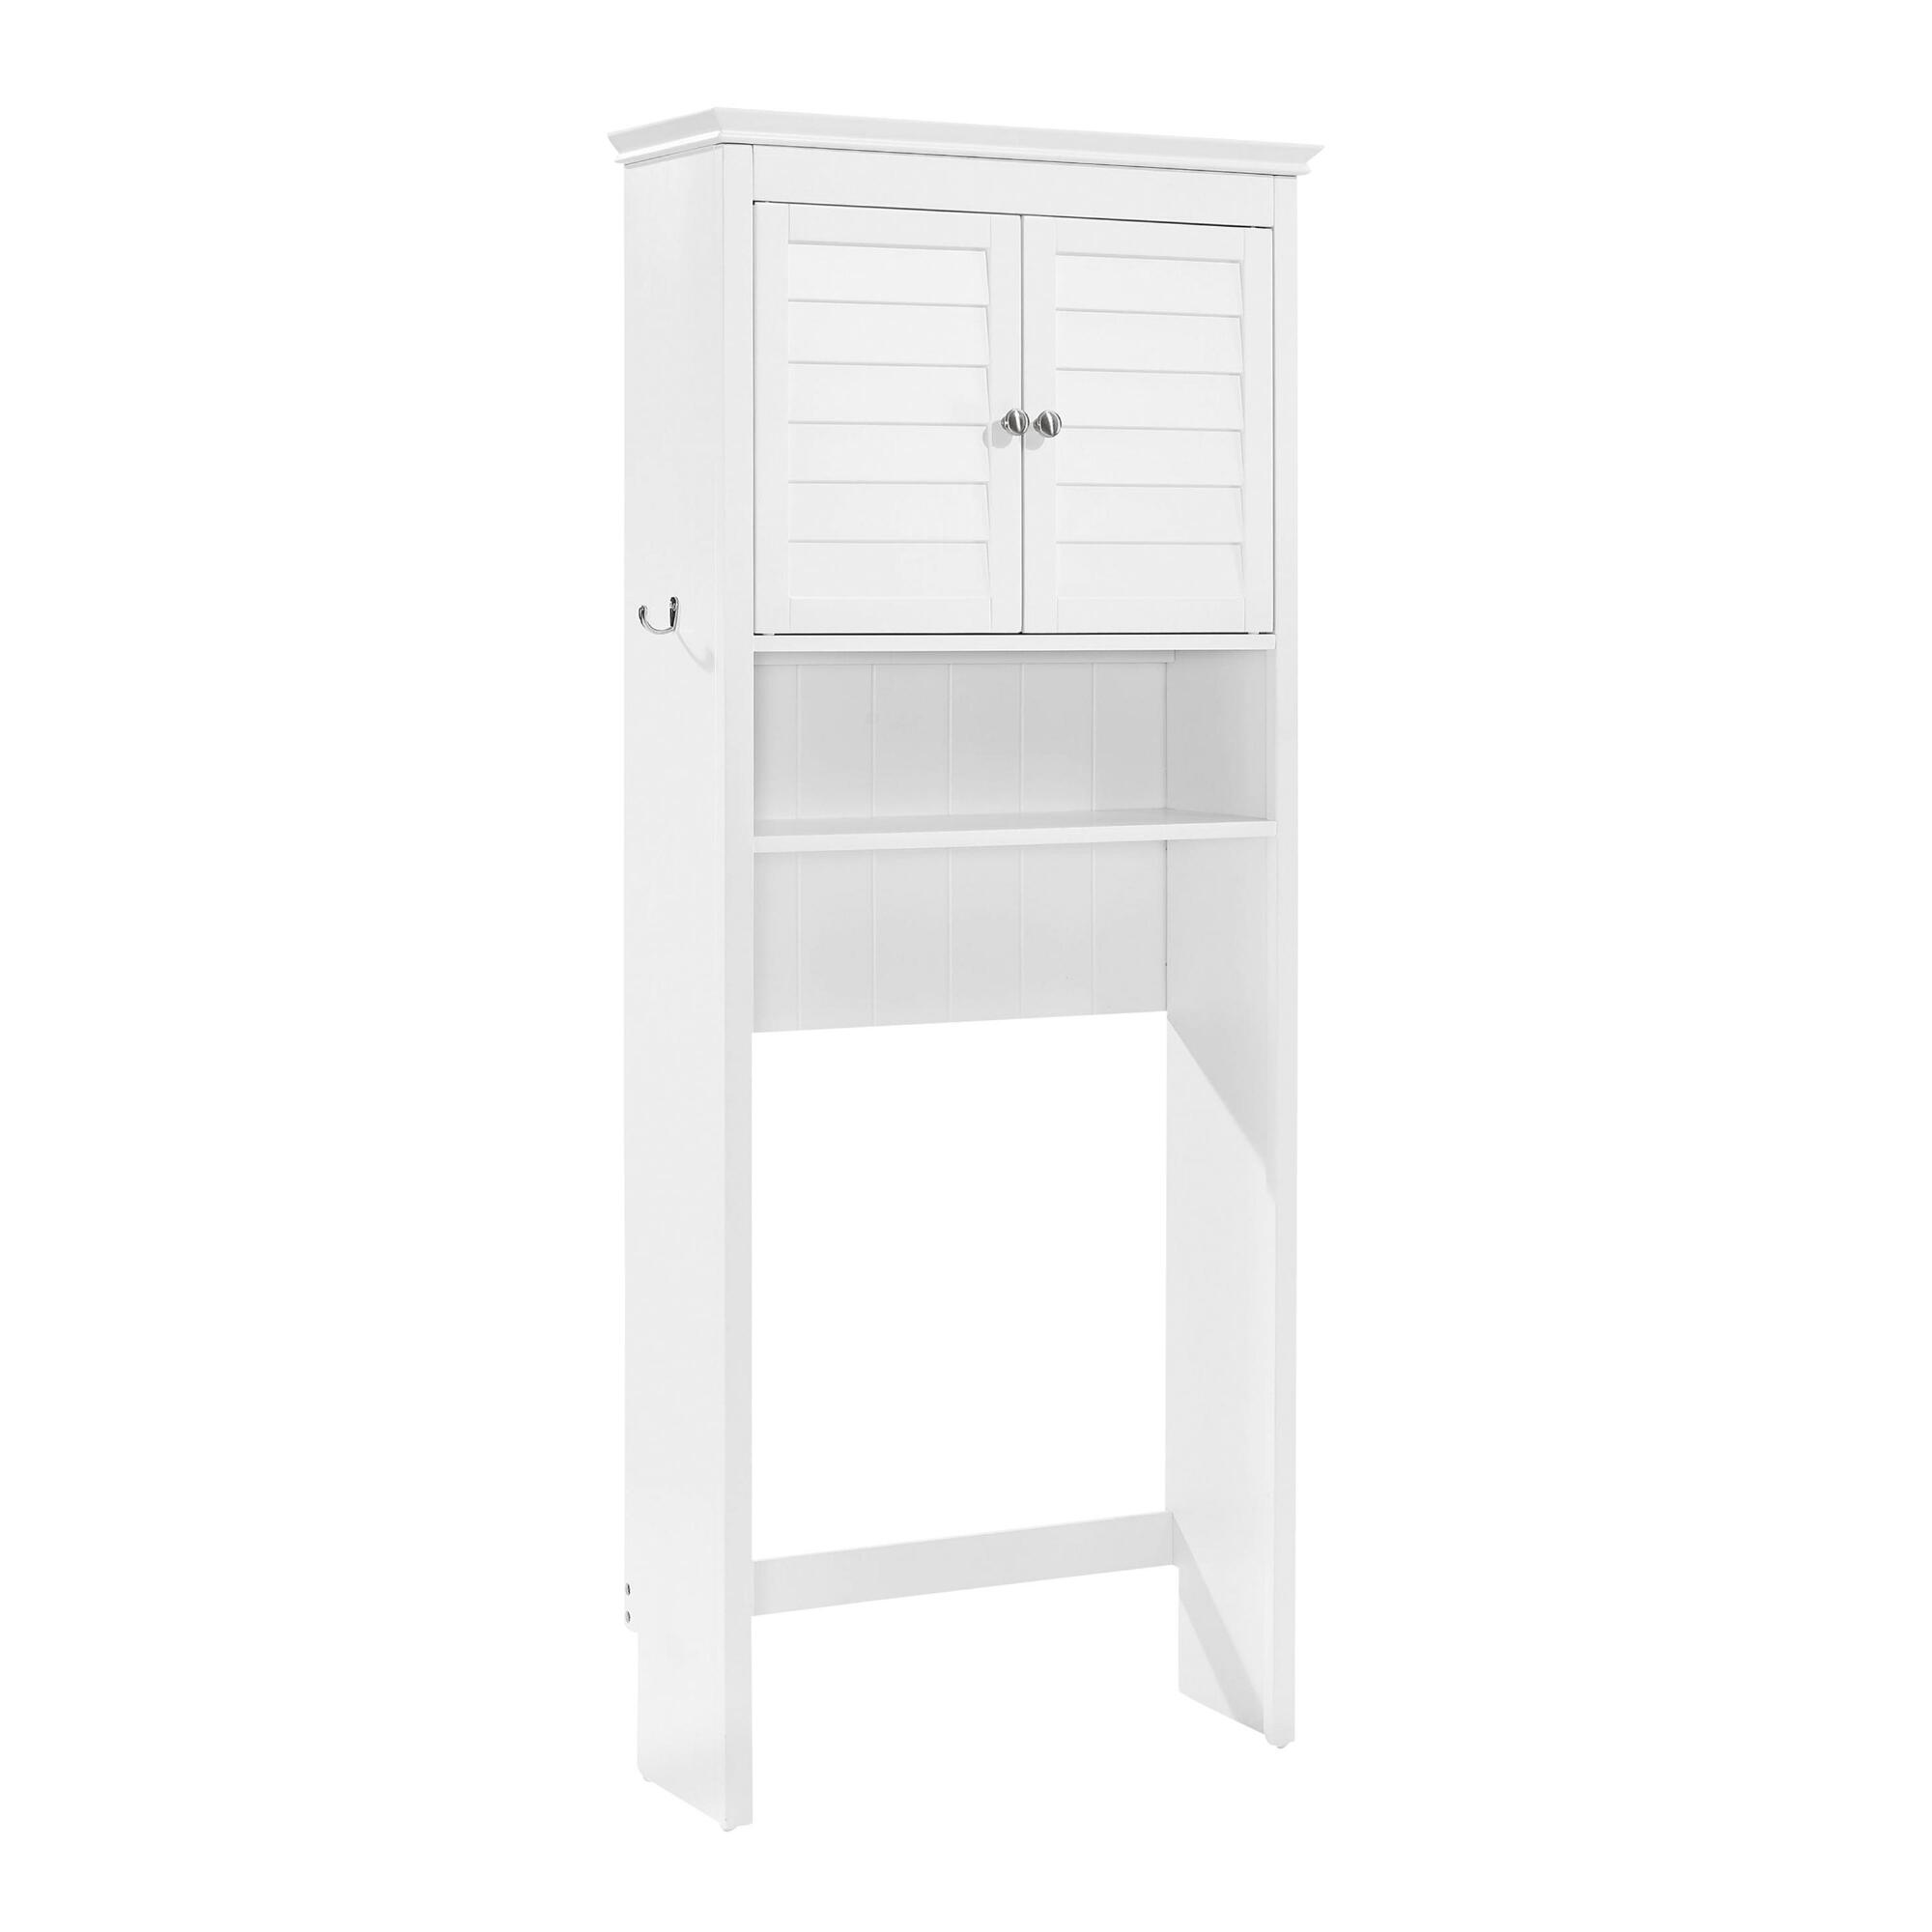 White Wood Maryella Bathroom Space Saver Cabinet World Market